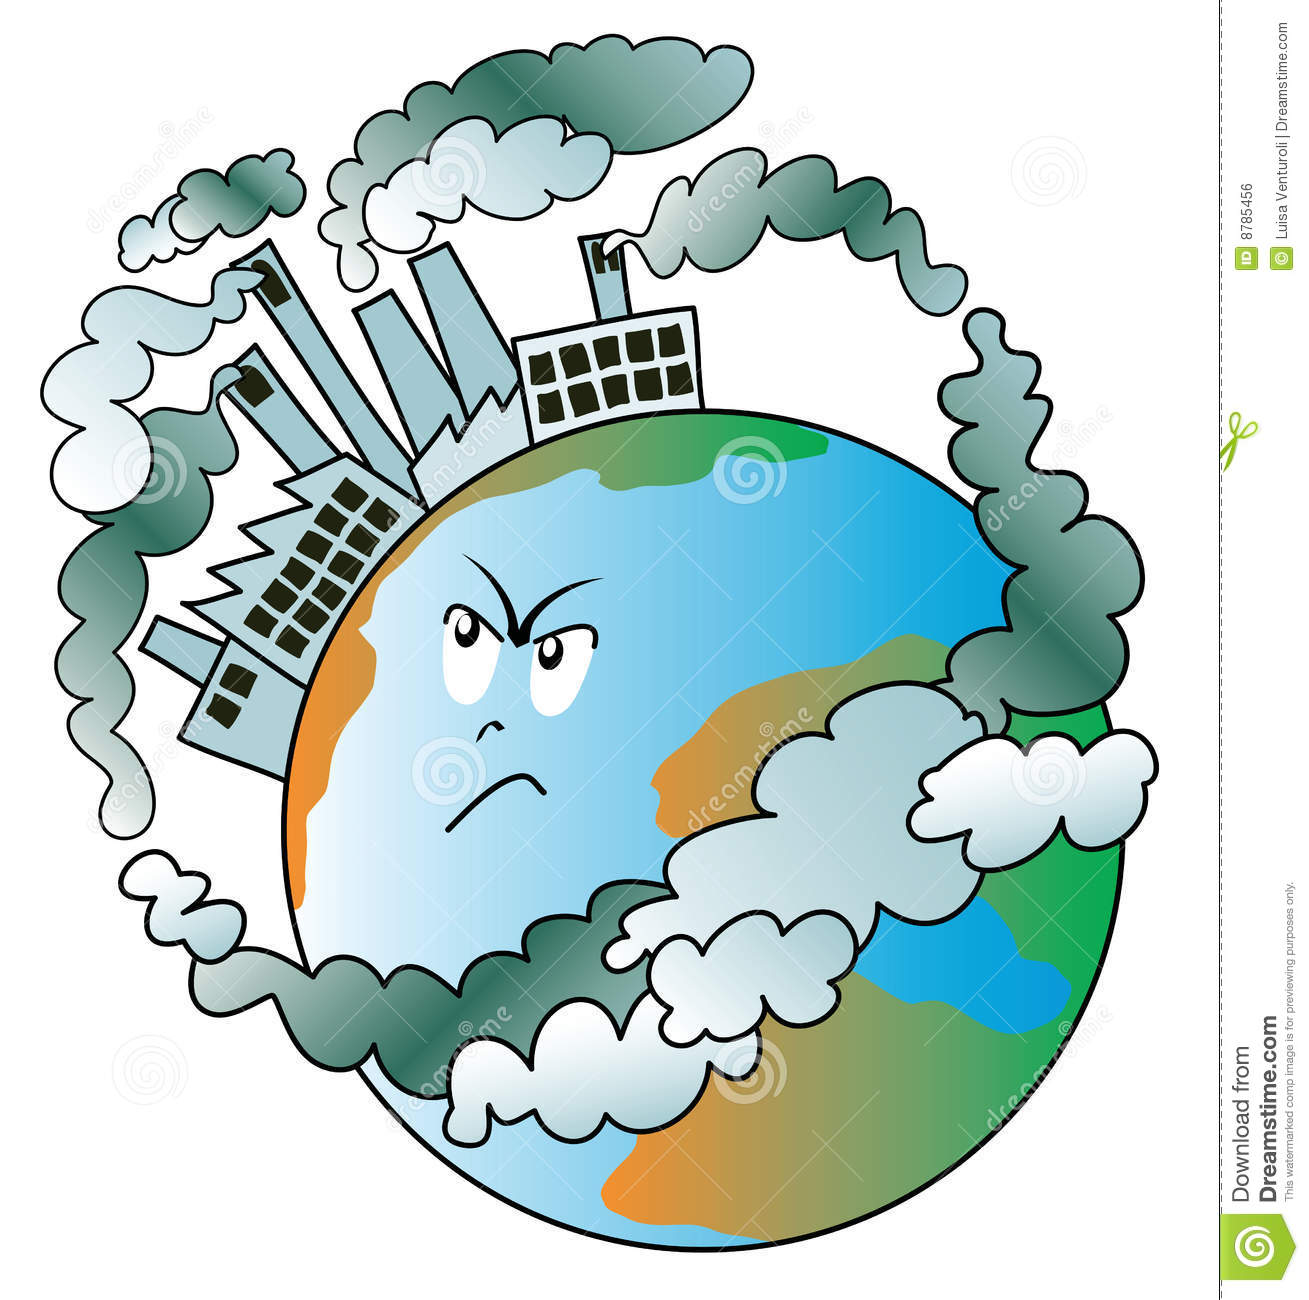 industrial pollution clipart - photo #14